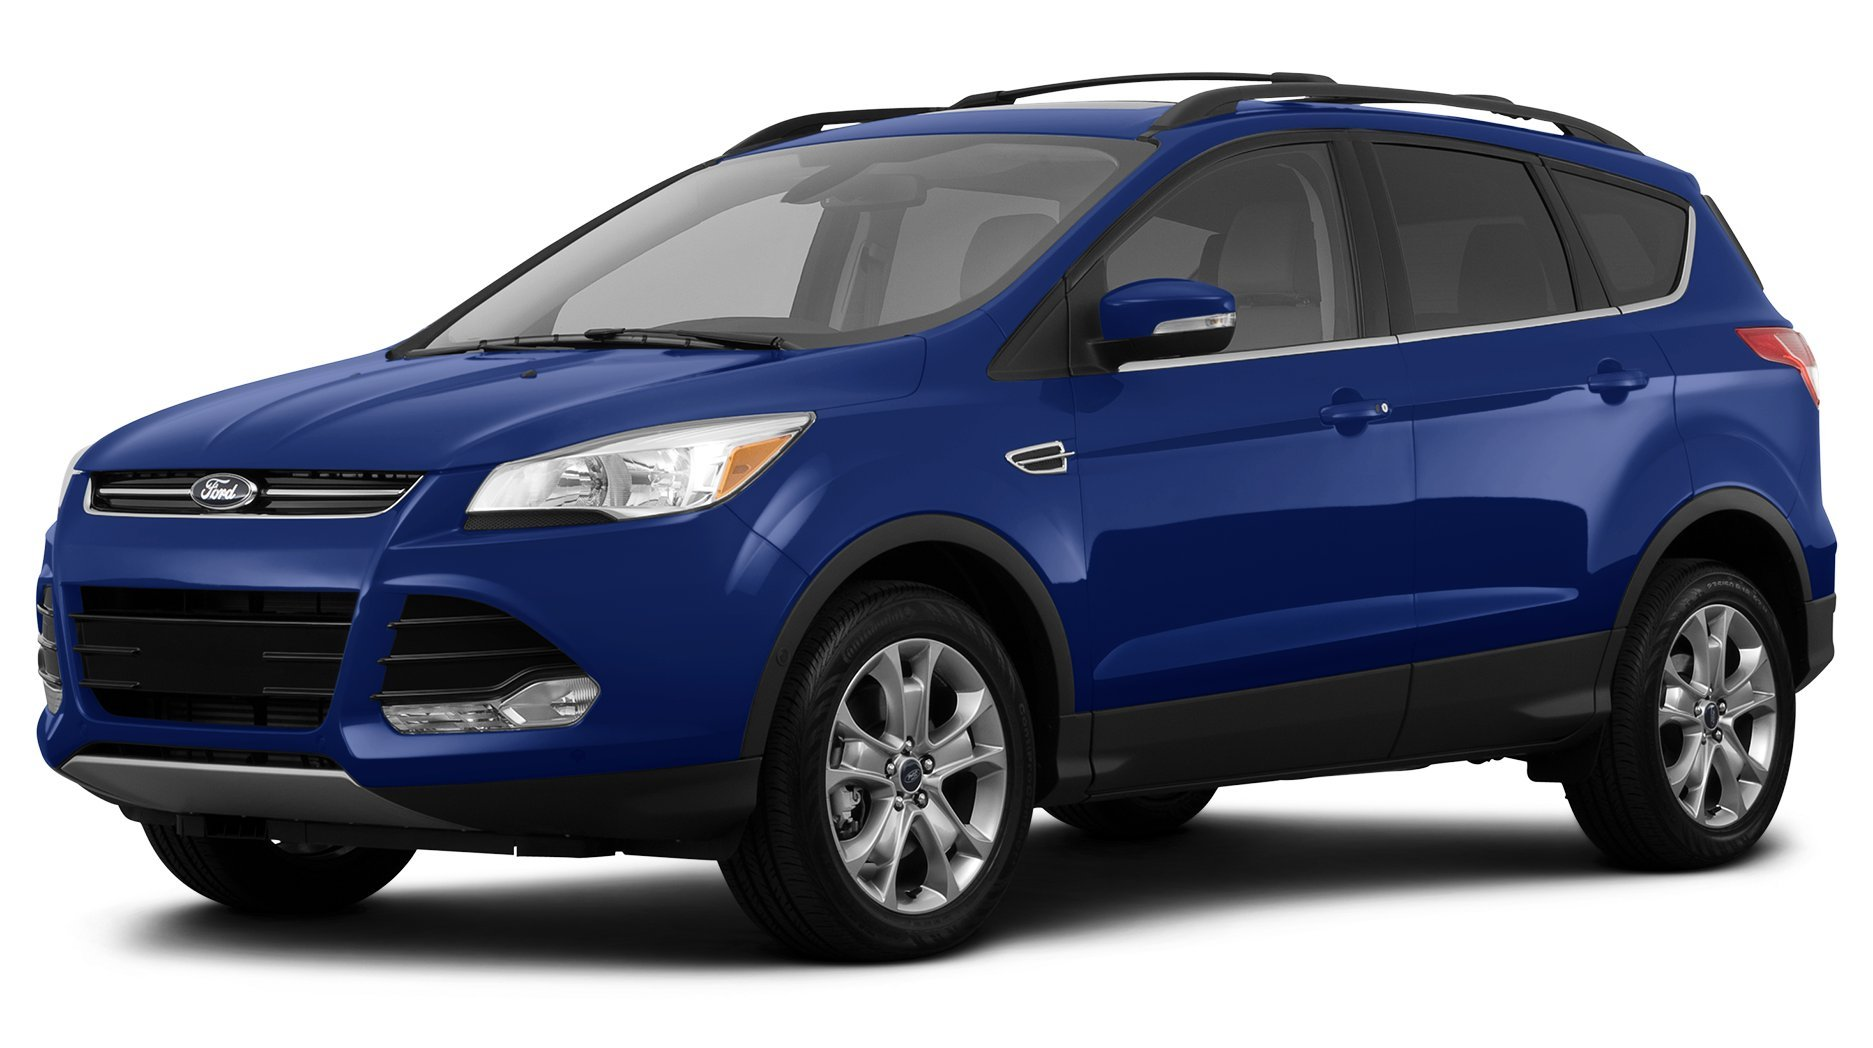 ... Automatic Transmission *Limited, 2013 Ford Escape SEL, 4-Wheel Drive  4-Door. 2013 Nissan Xterra ...